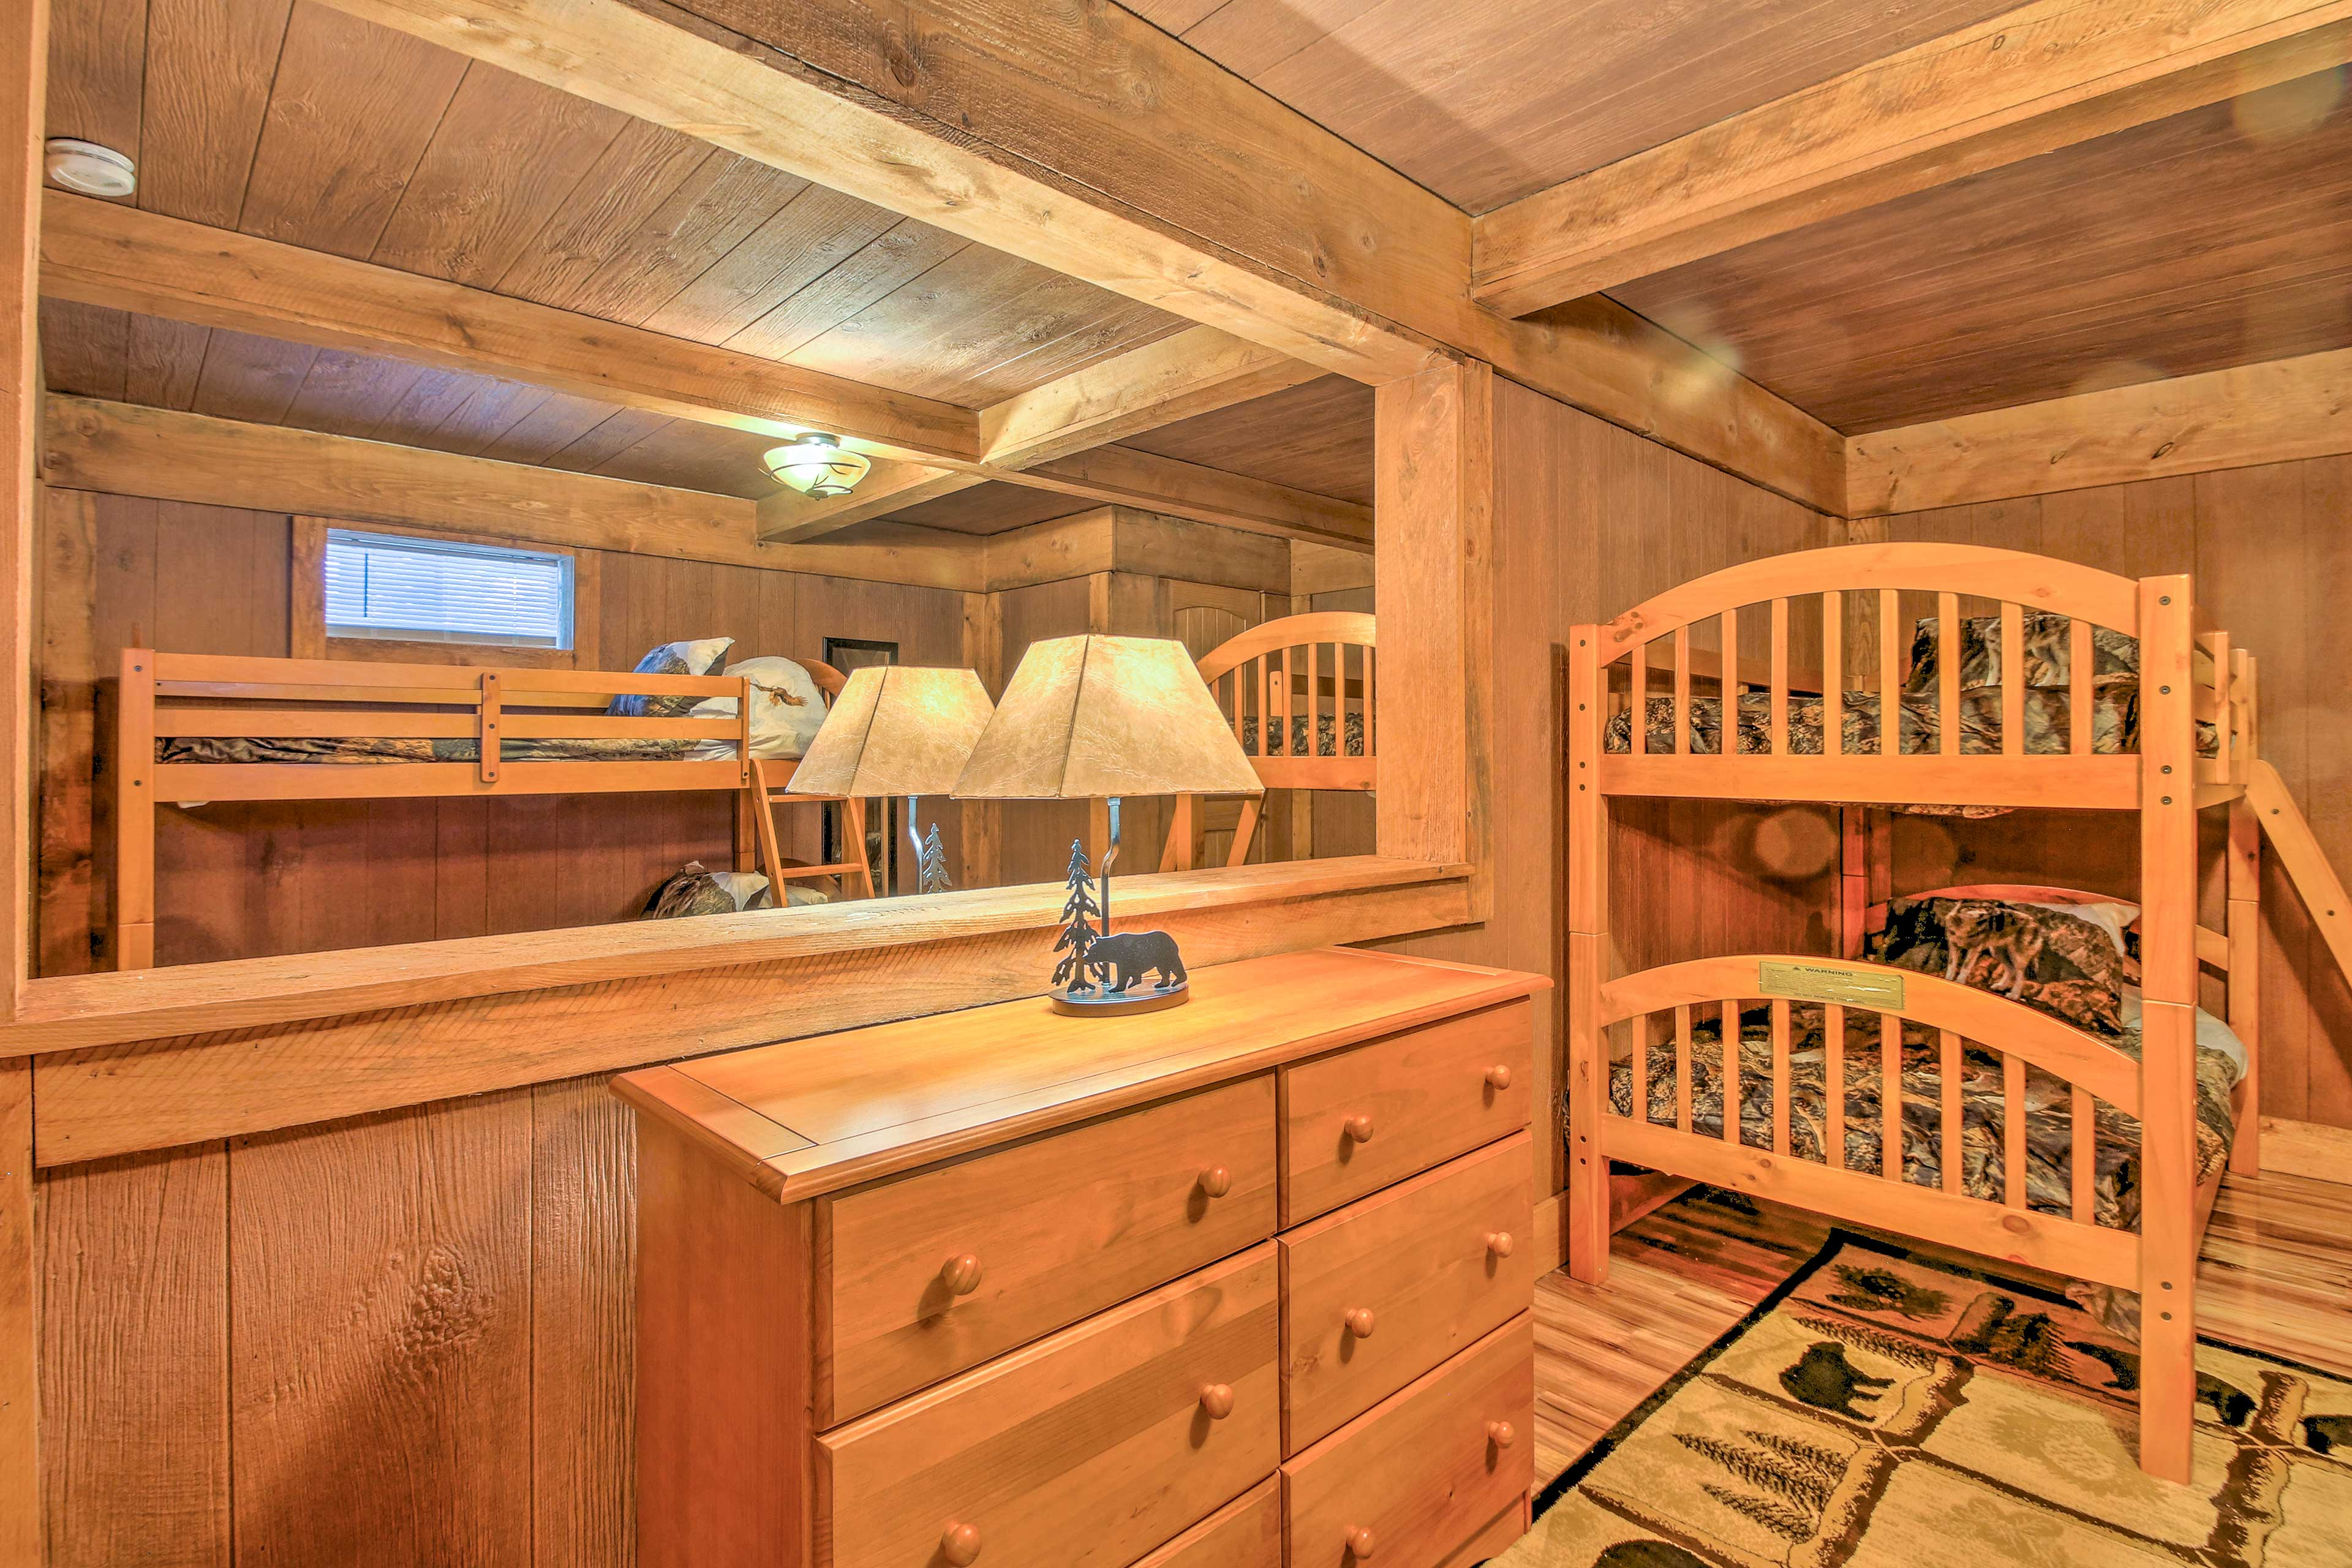 2 more twin-over-twin bunk beds can be found in the basement.